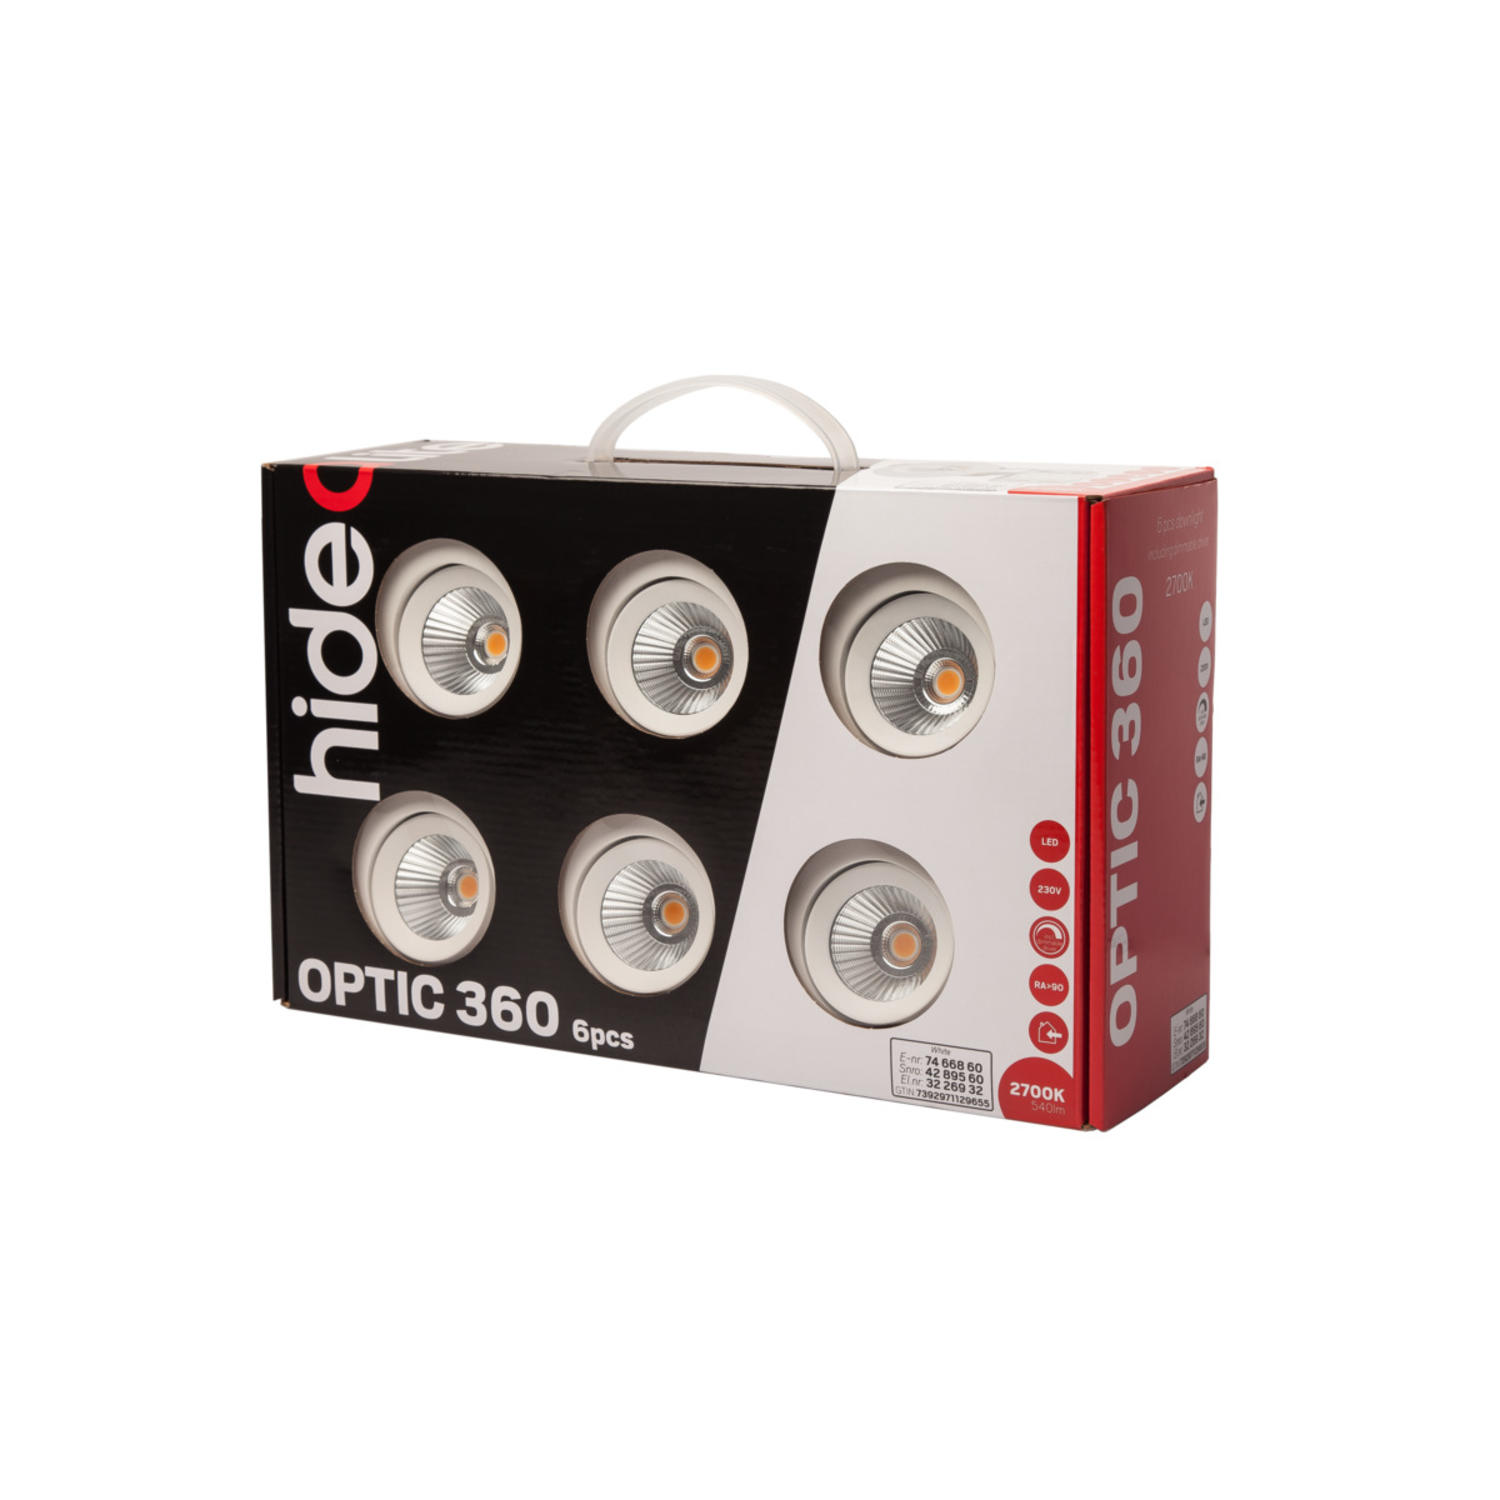 Optic 360 6-pack Vit 2700K